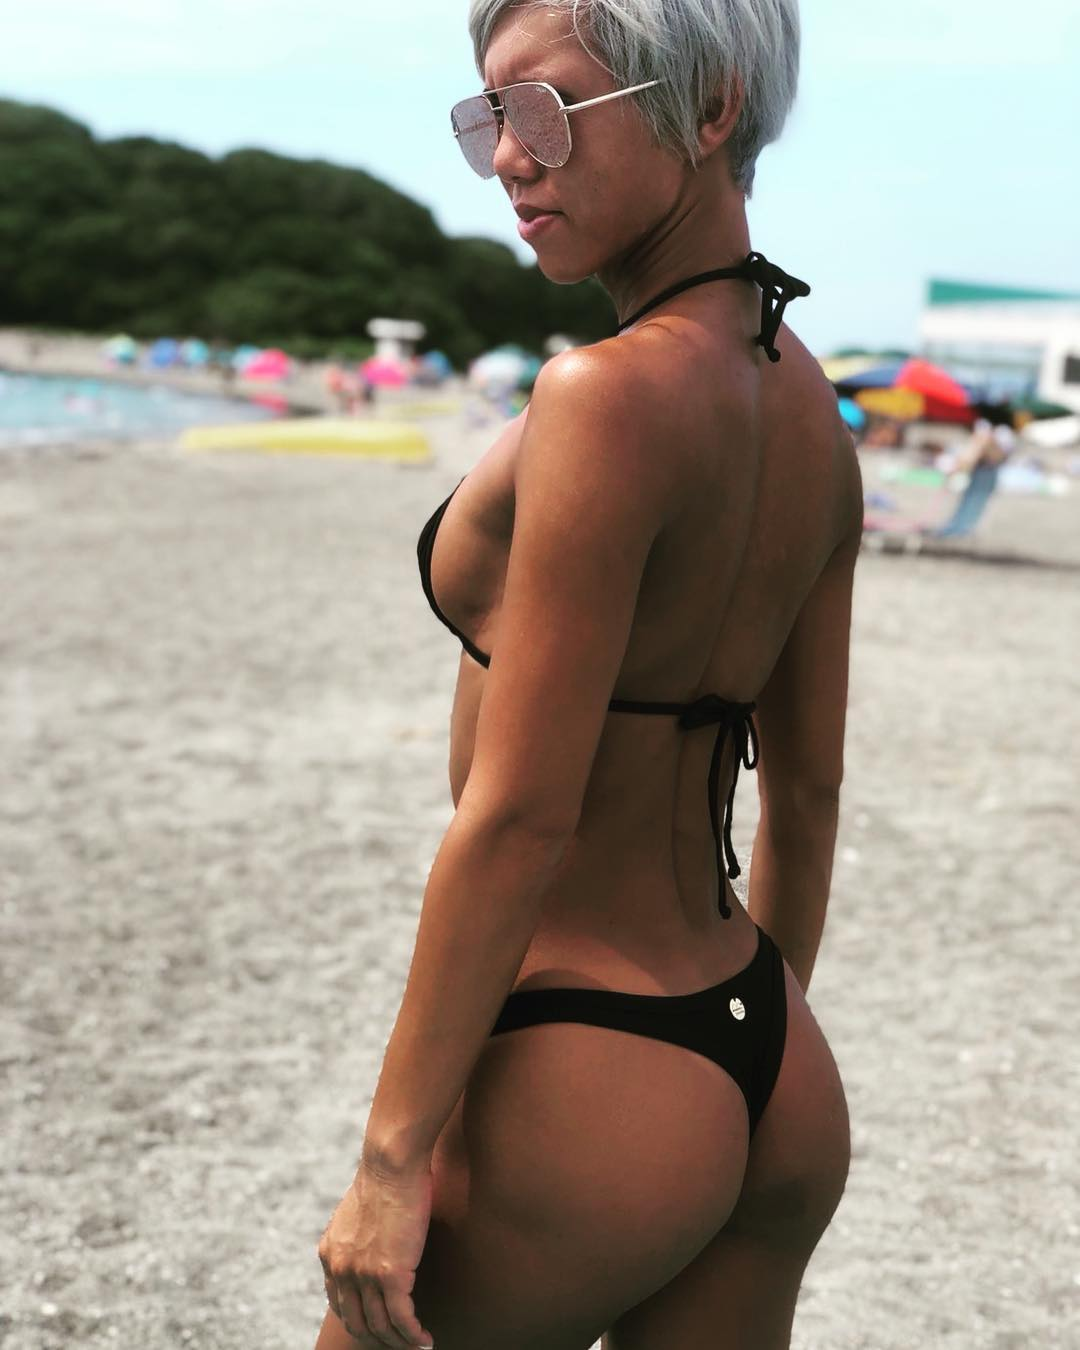 Bikini lb Miran at beach